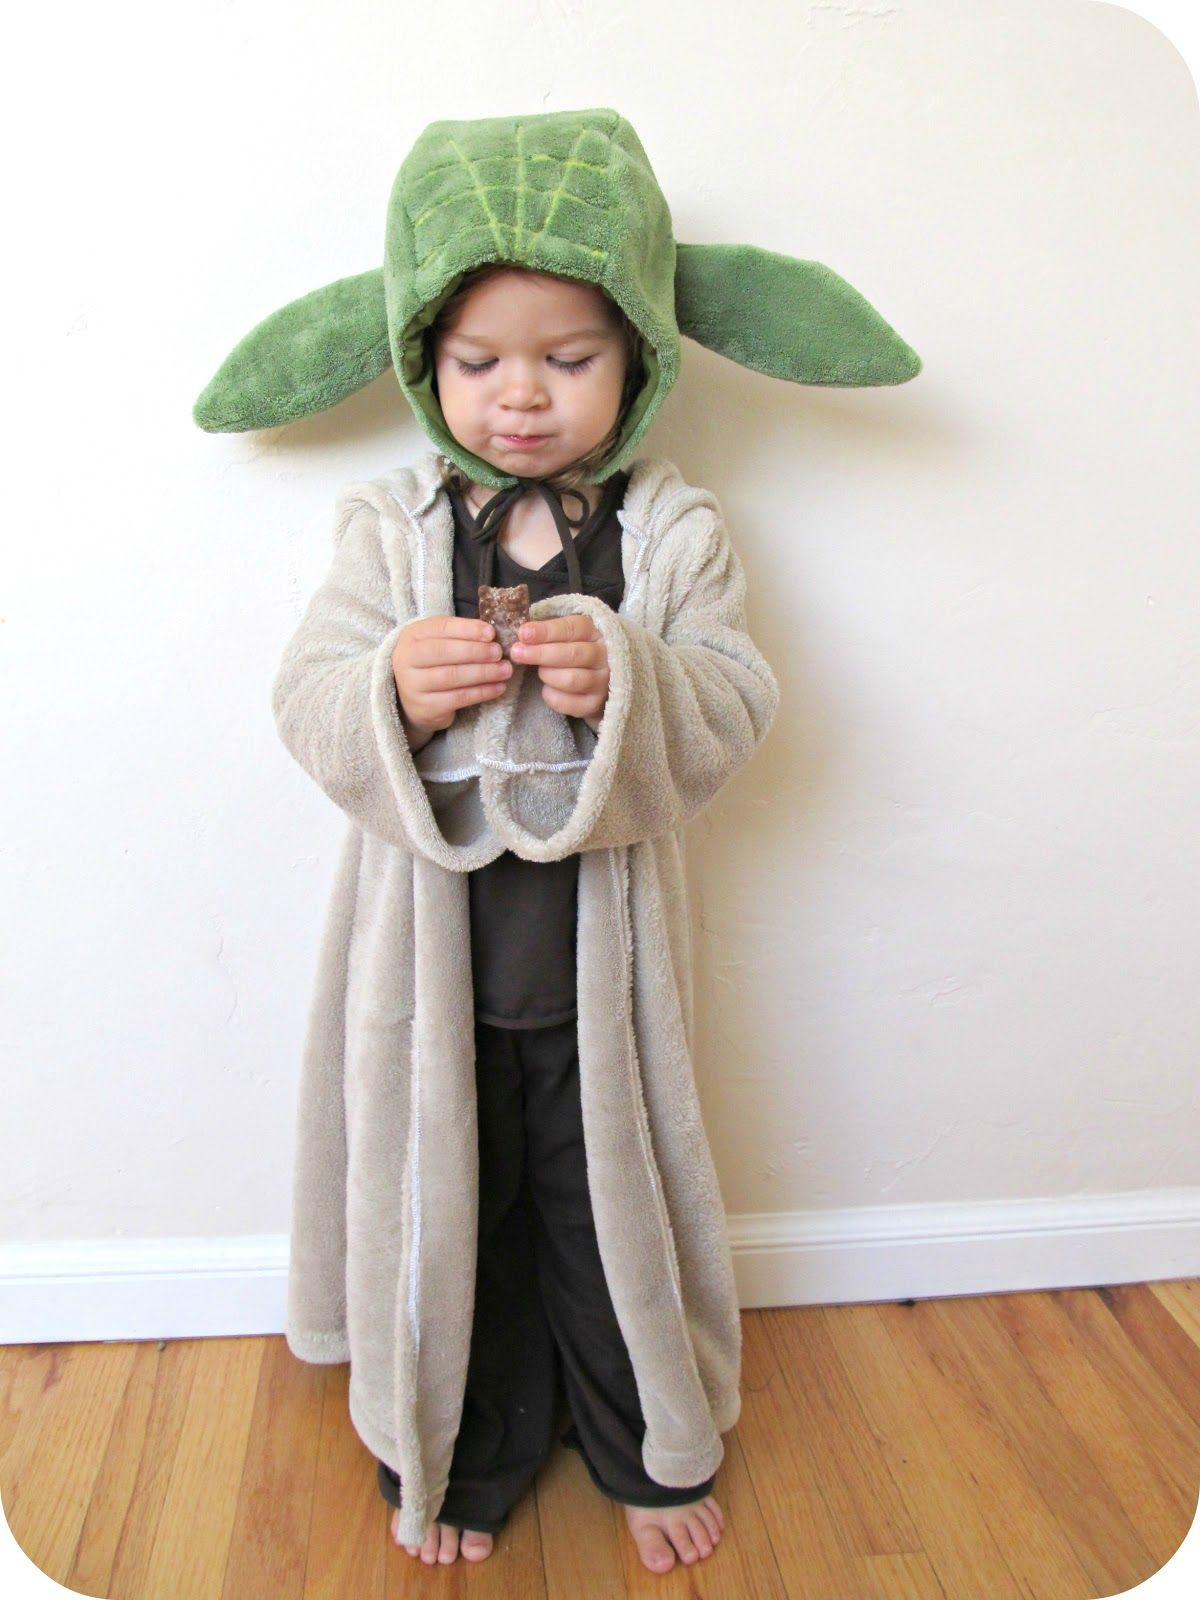 homemade by jill comfy dress up yoda costume diy pinterest kost m kinder kost m und. Black Bedroom Furniture Sets. Home Design Ideas